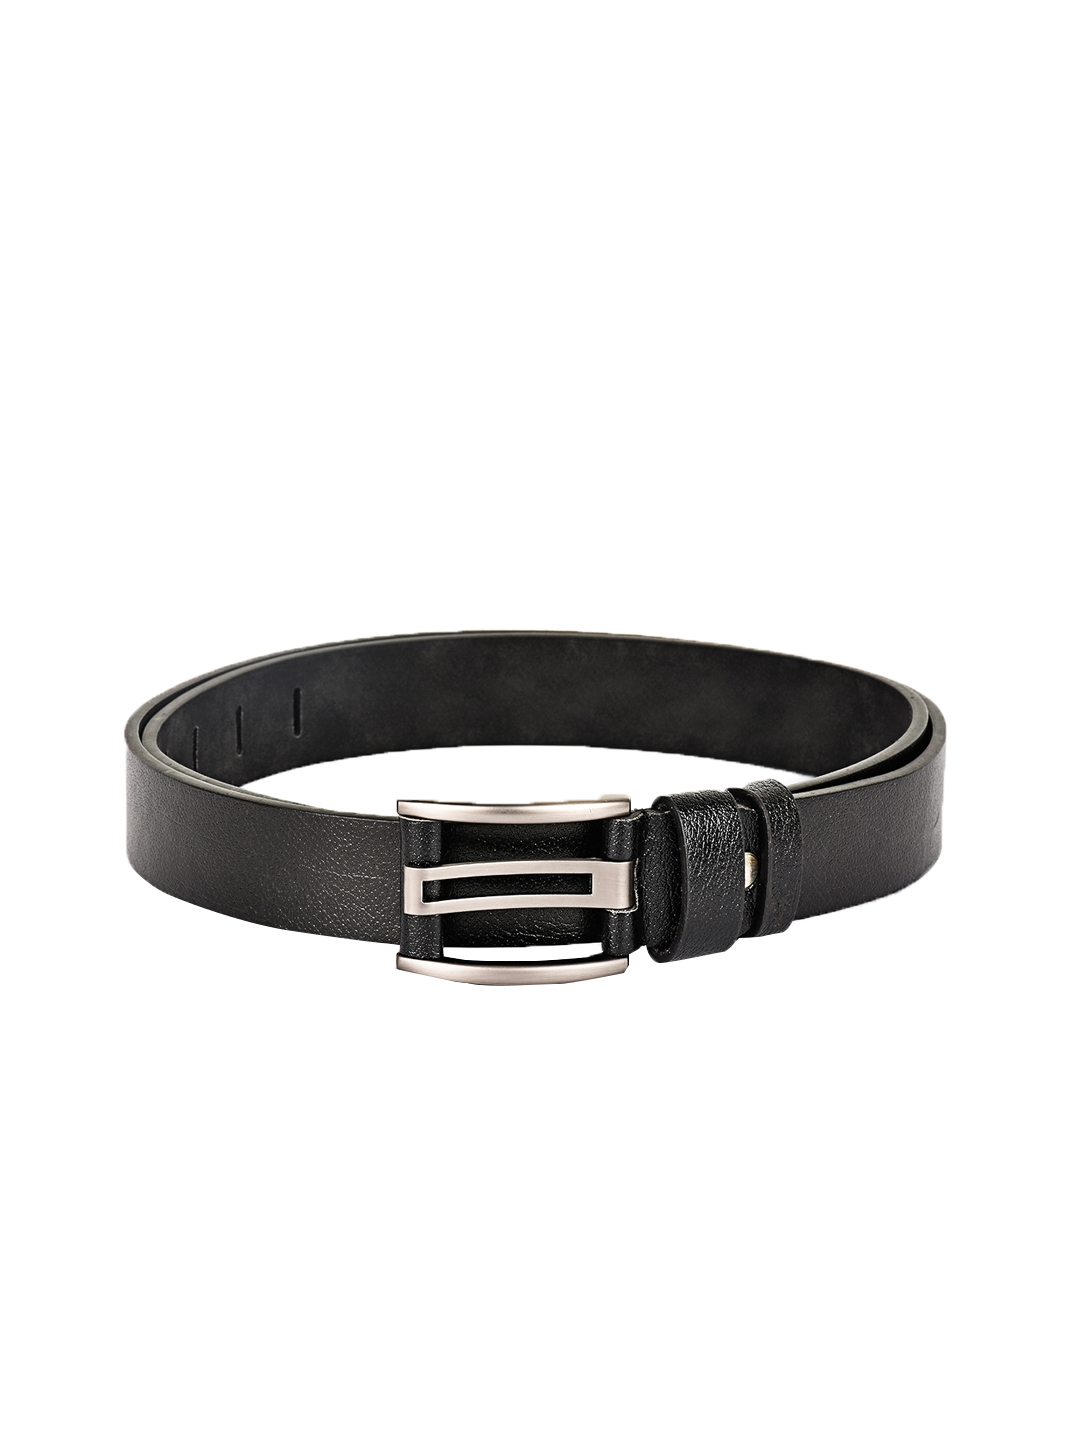 BuckleUp Men Black Leather Belt